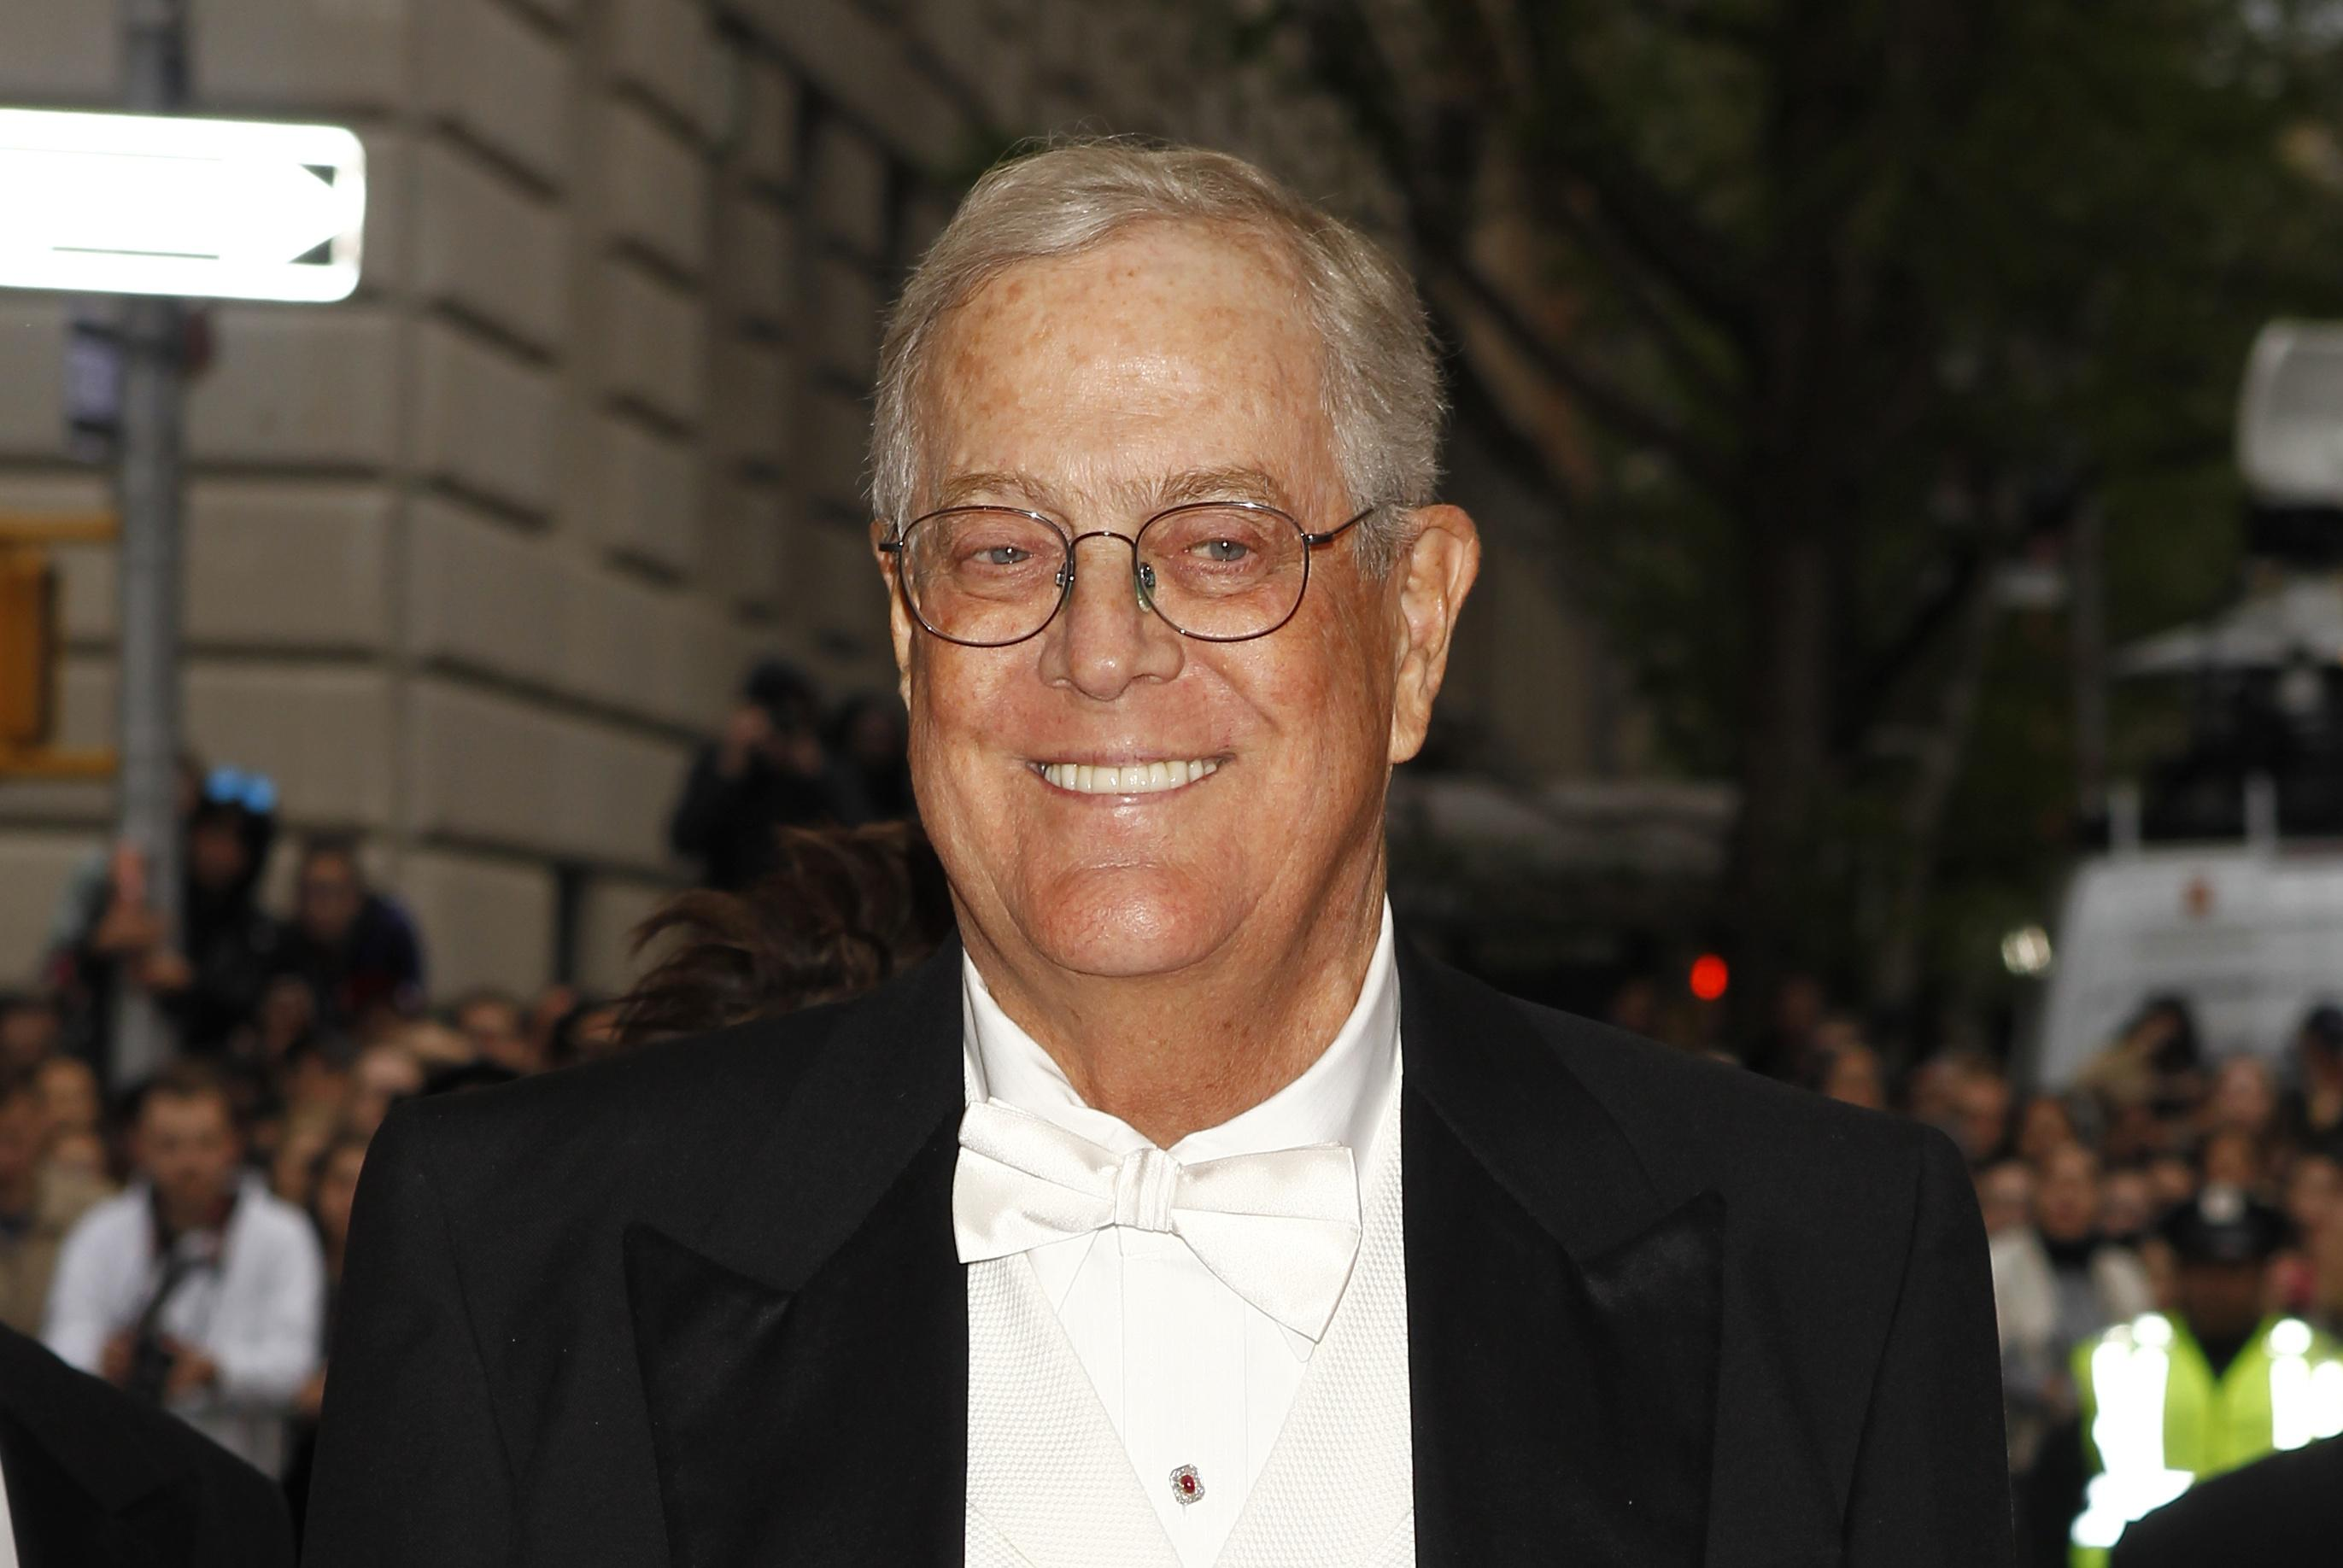 Conservative icon David Koch leaving business, politics - 6/5/2018 8:41:09 AM